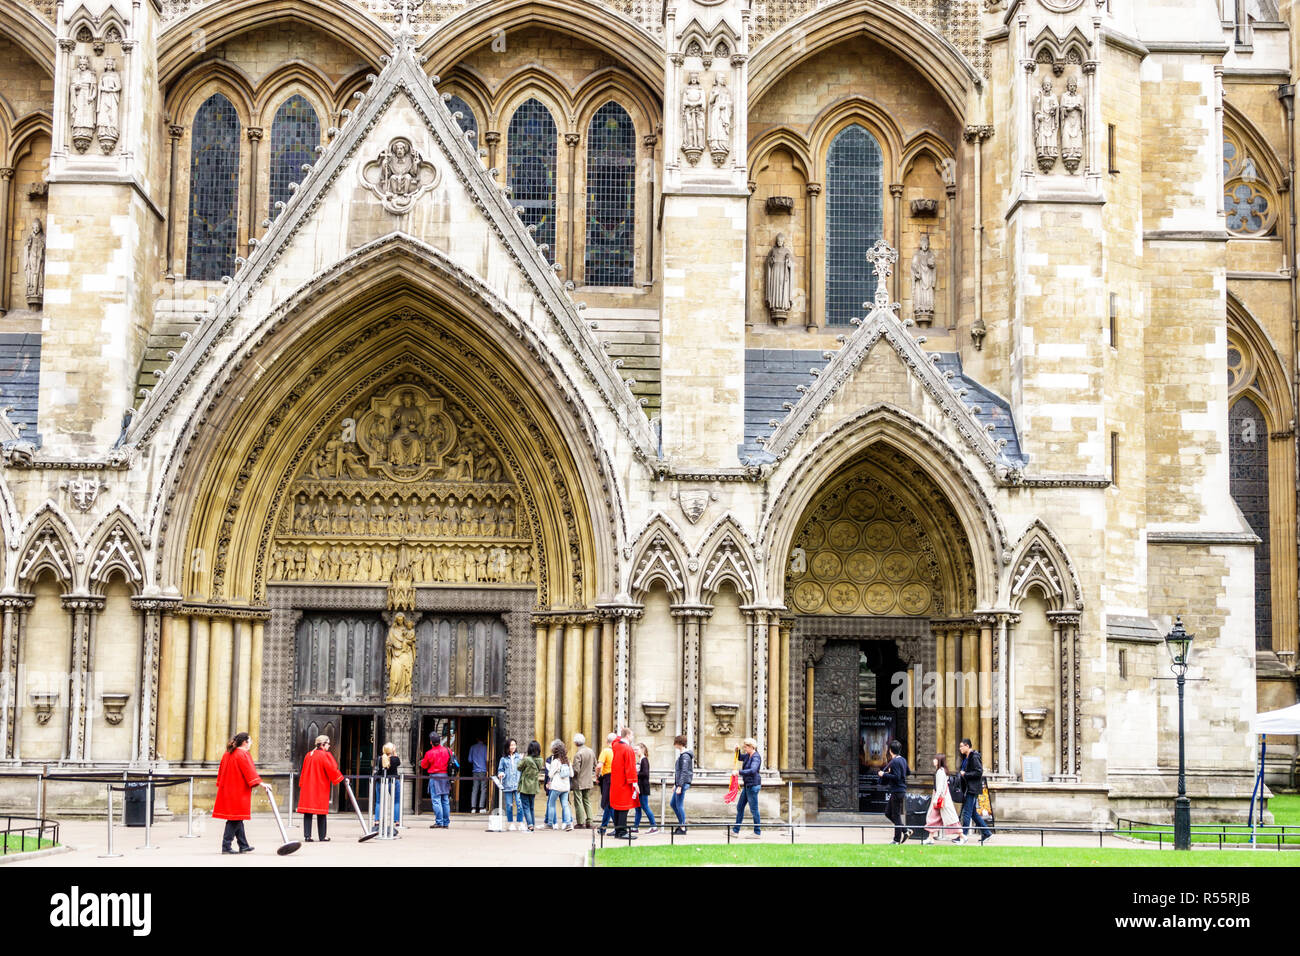 United Kingdom Great Britain England London Westminster Abbey Gothic Church Protestant exterior north entrance - Stock Image